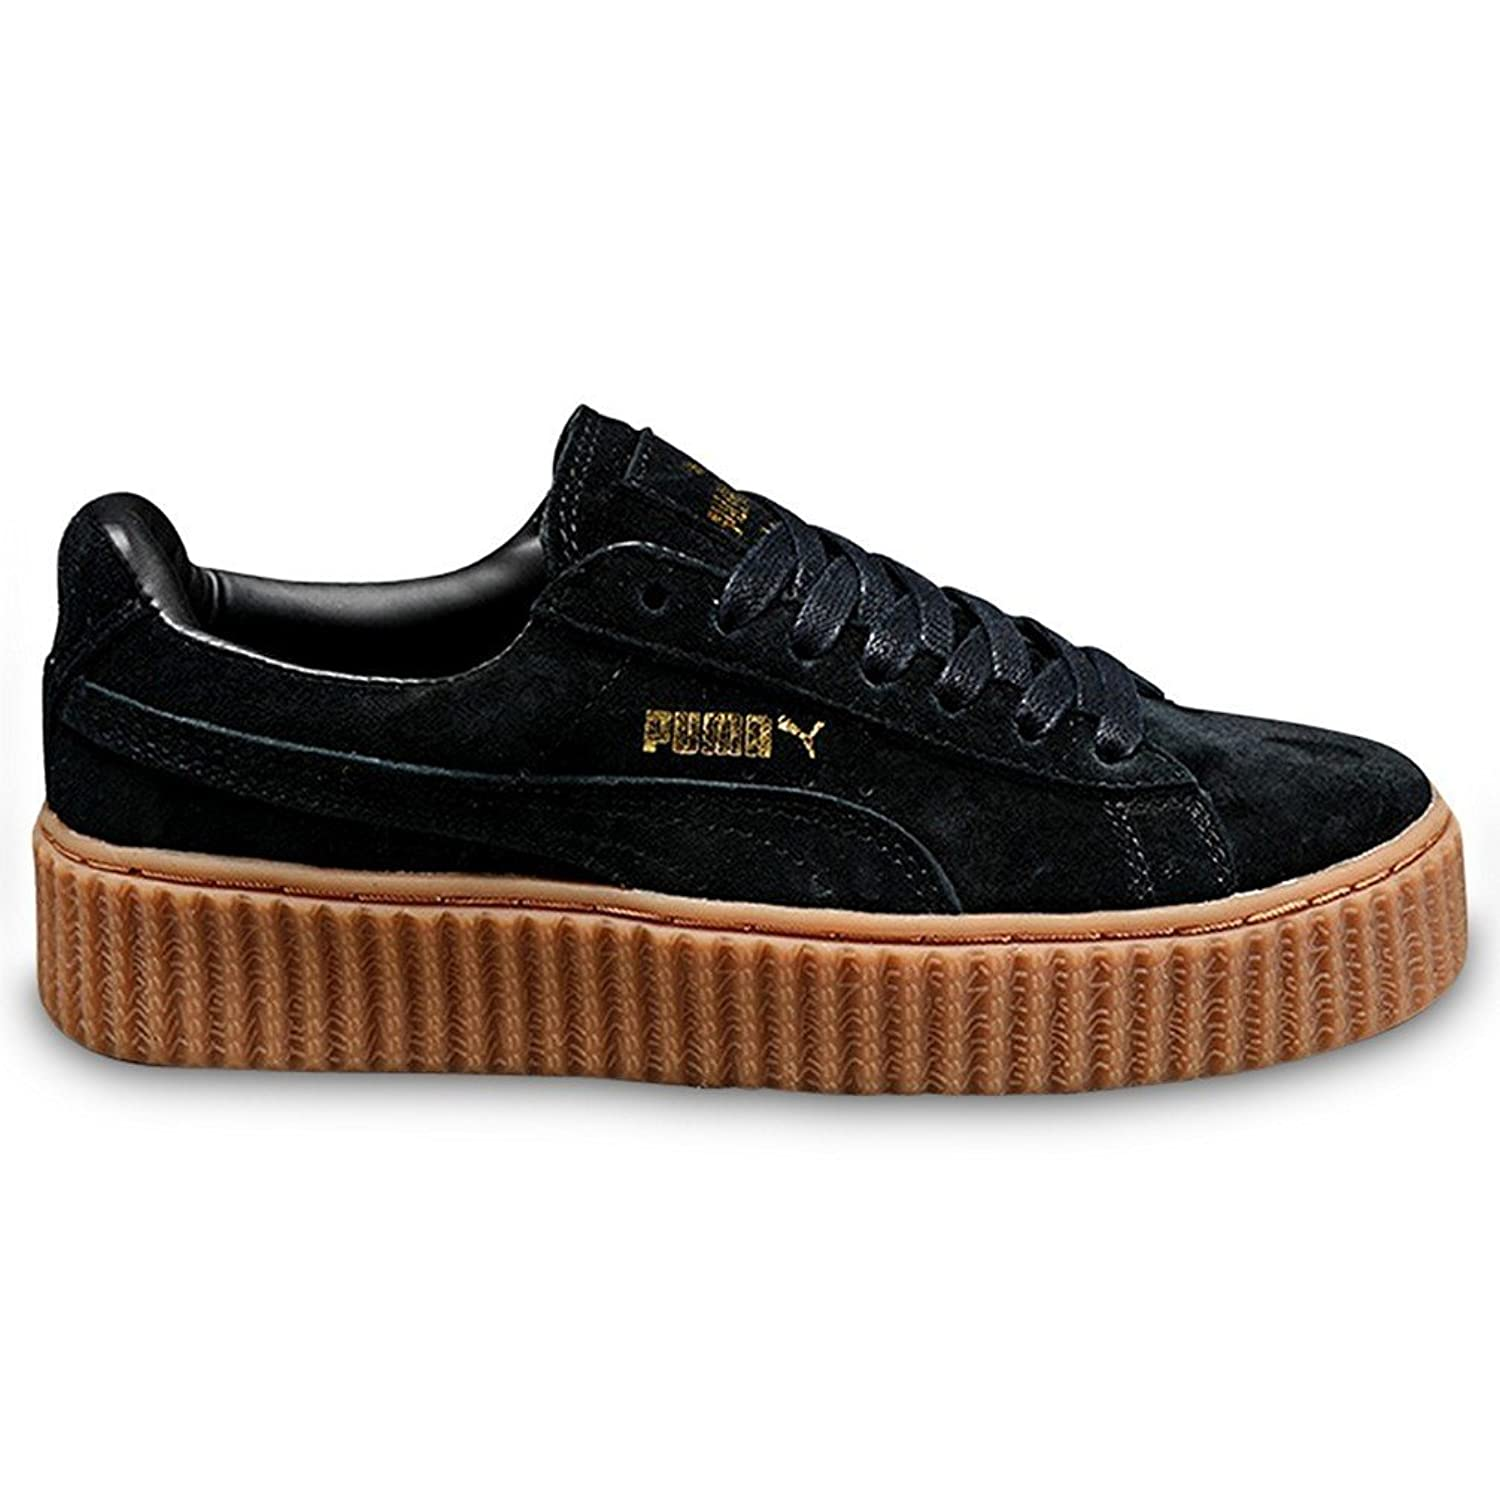 acquisto puma fenty creepers bambino rosa off50 scontate. Black Bedroom Furniture Sets. Home Design Ideas